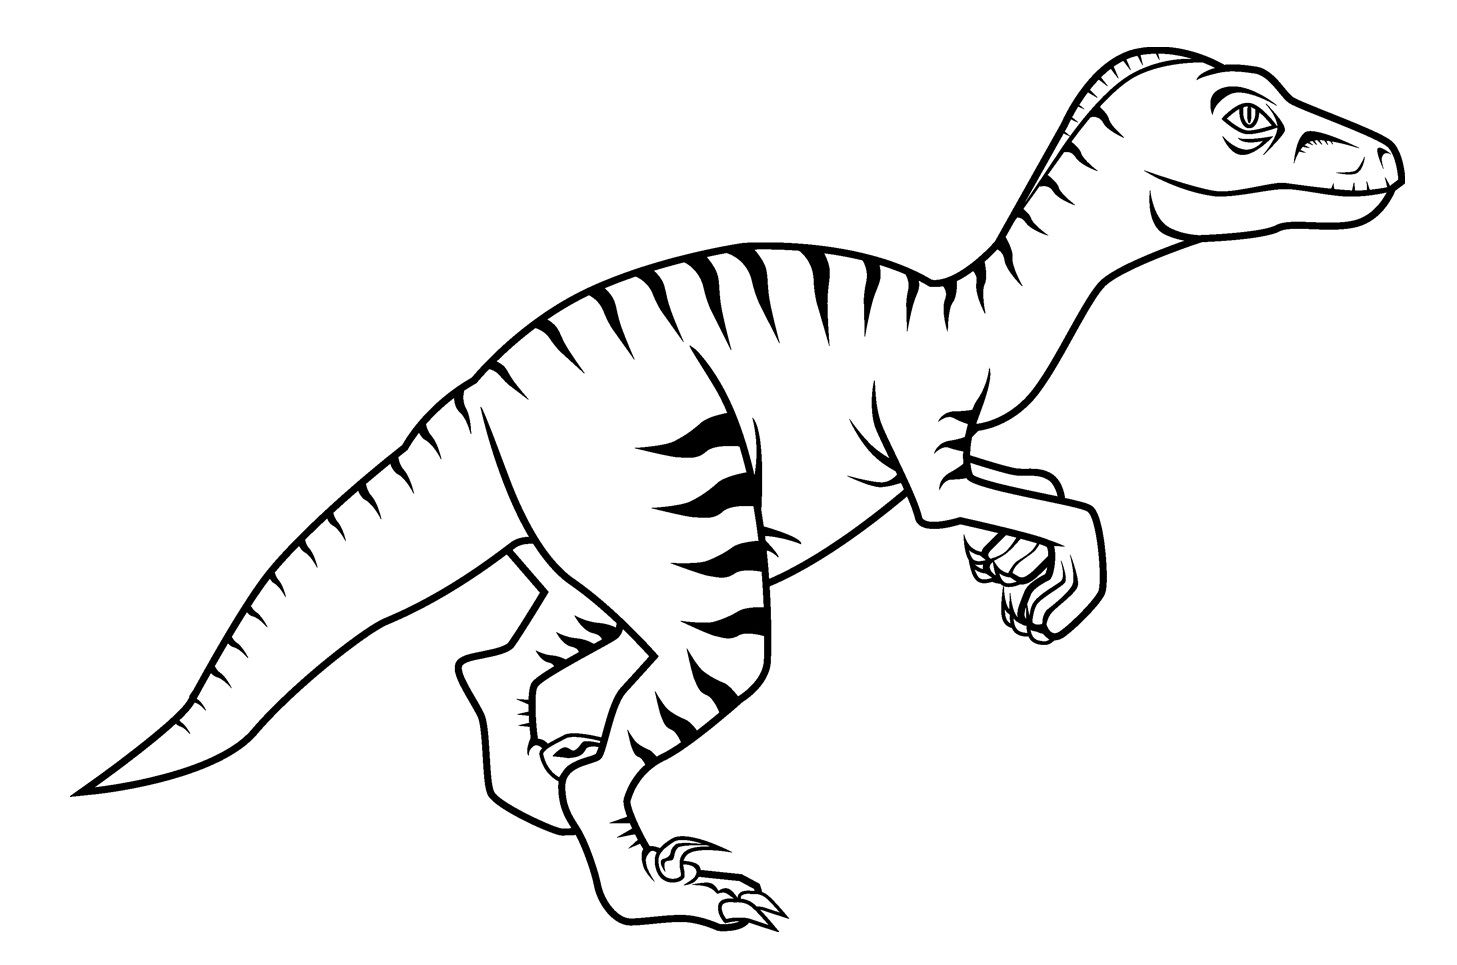 Horrible Velociraptor Dinosaurs Coloring Pages For Kids B6h Printable Dinosaurs Coloring Pages For Kids